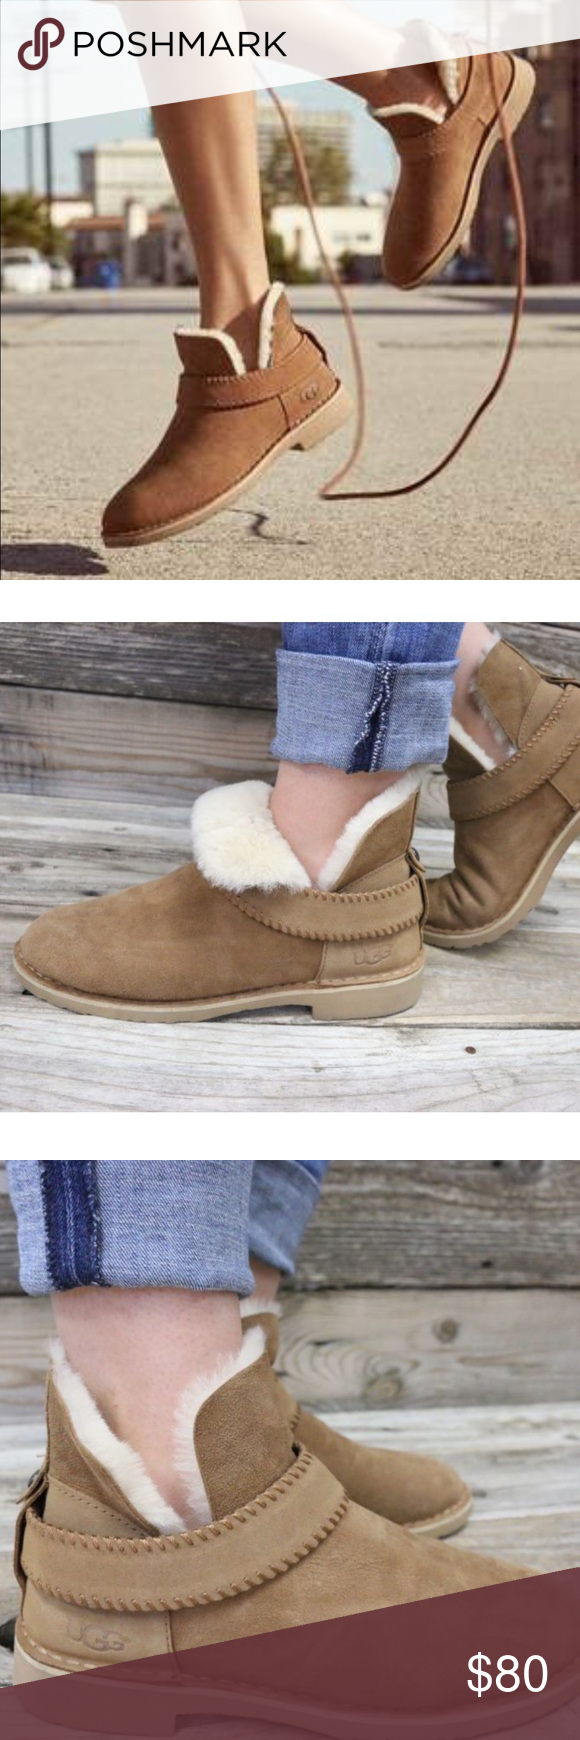 4ffb4ad7a77 UGG McKay Chestnut Sheepskin Ankle Boots NEW 🌈 New without box ...